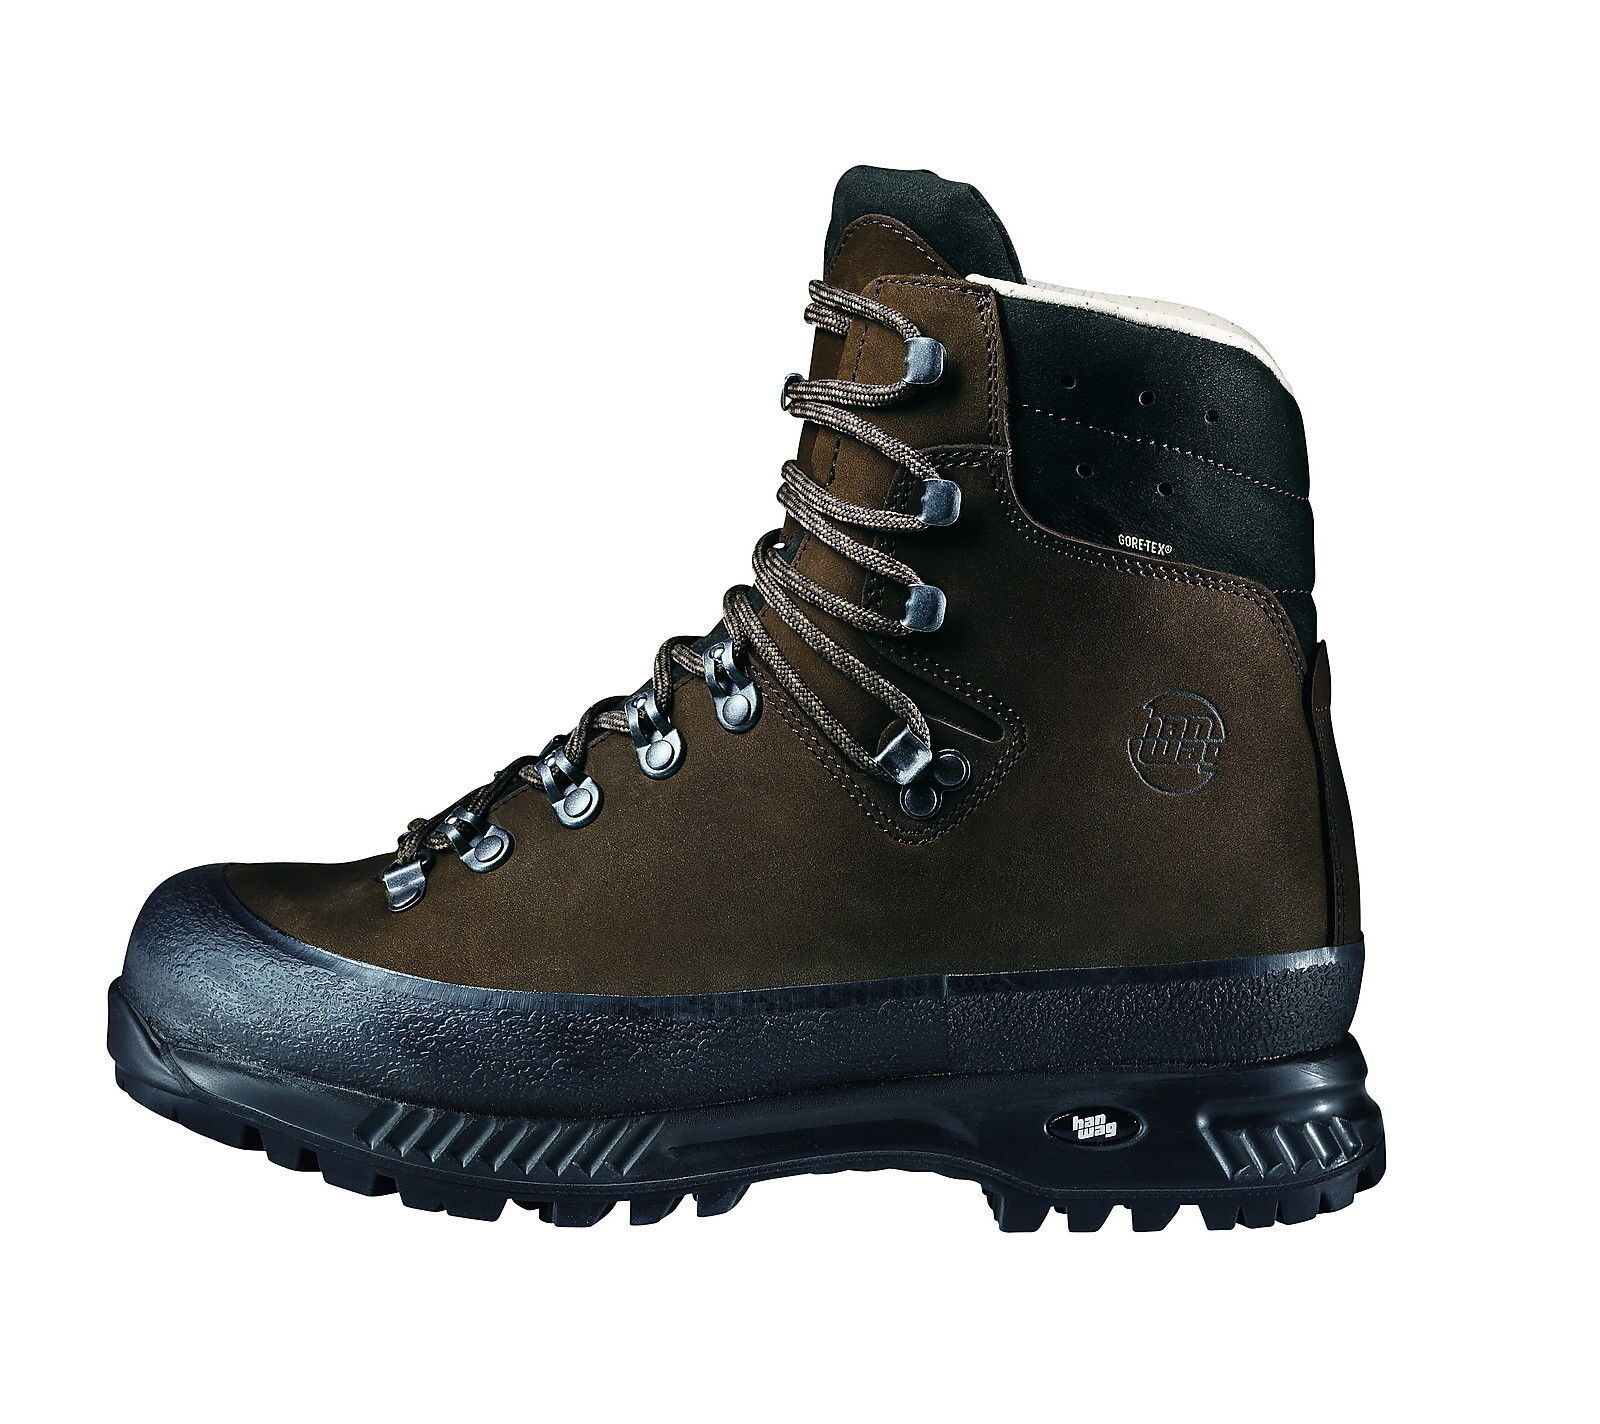 Hanwag Mountain shoes   Alaska GTX Men Size 12,5 - 48 Earth  cheaper prices